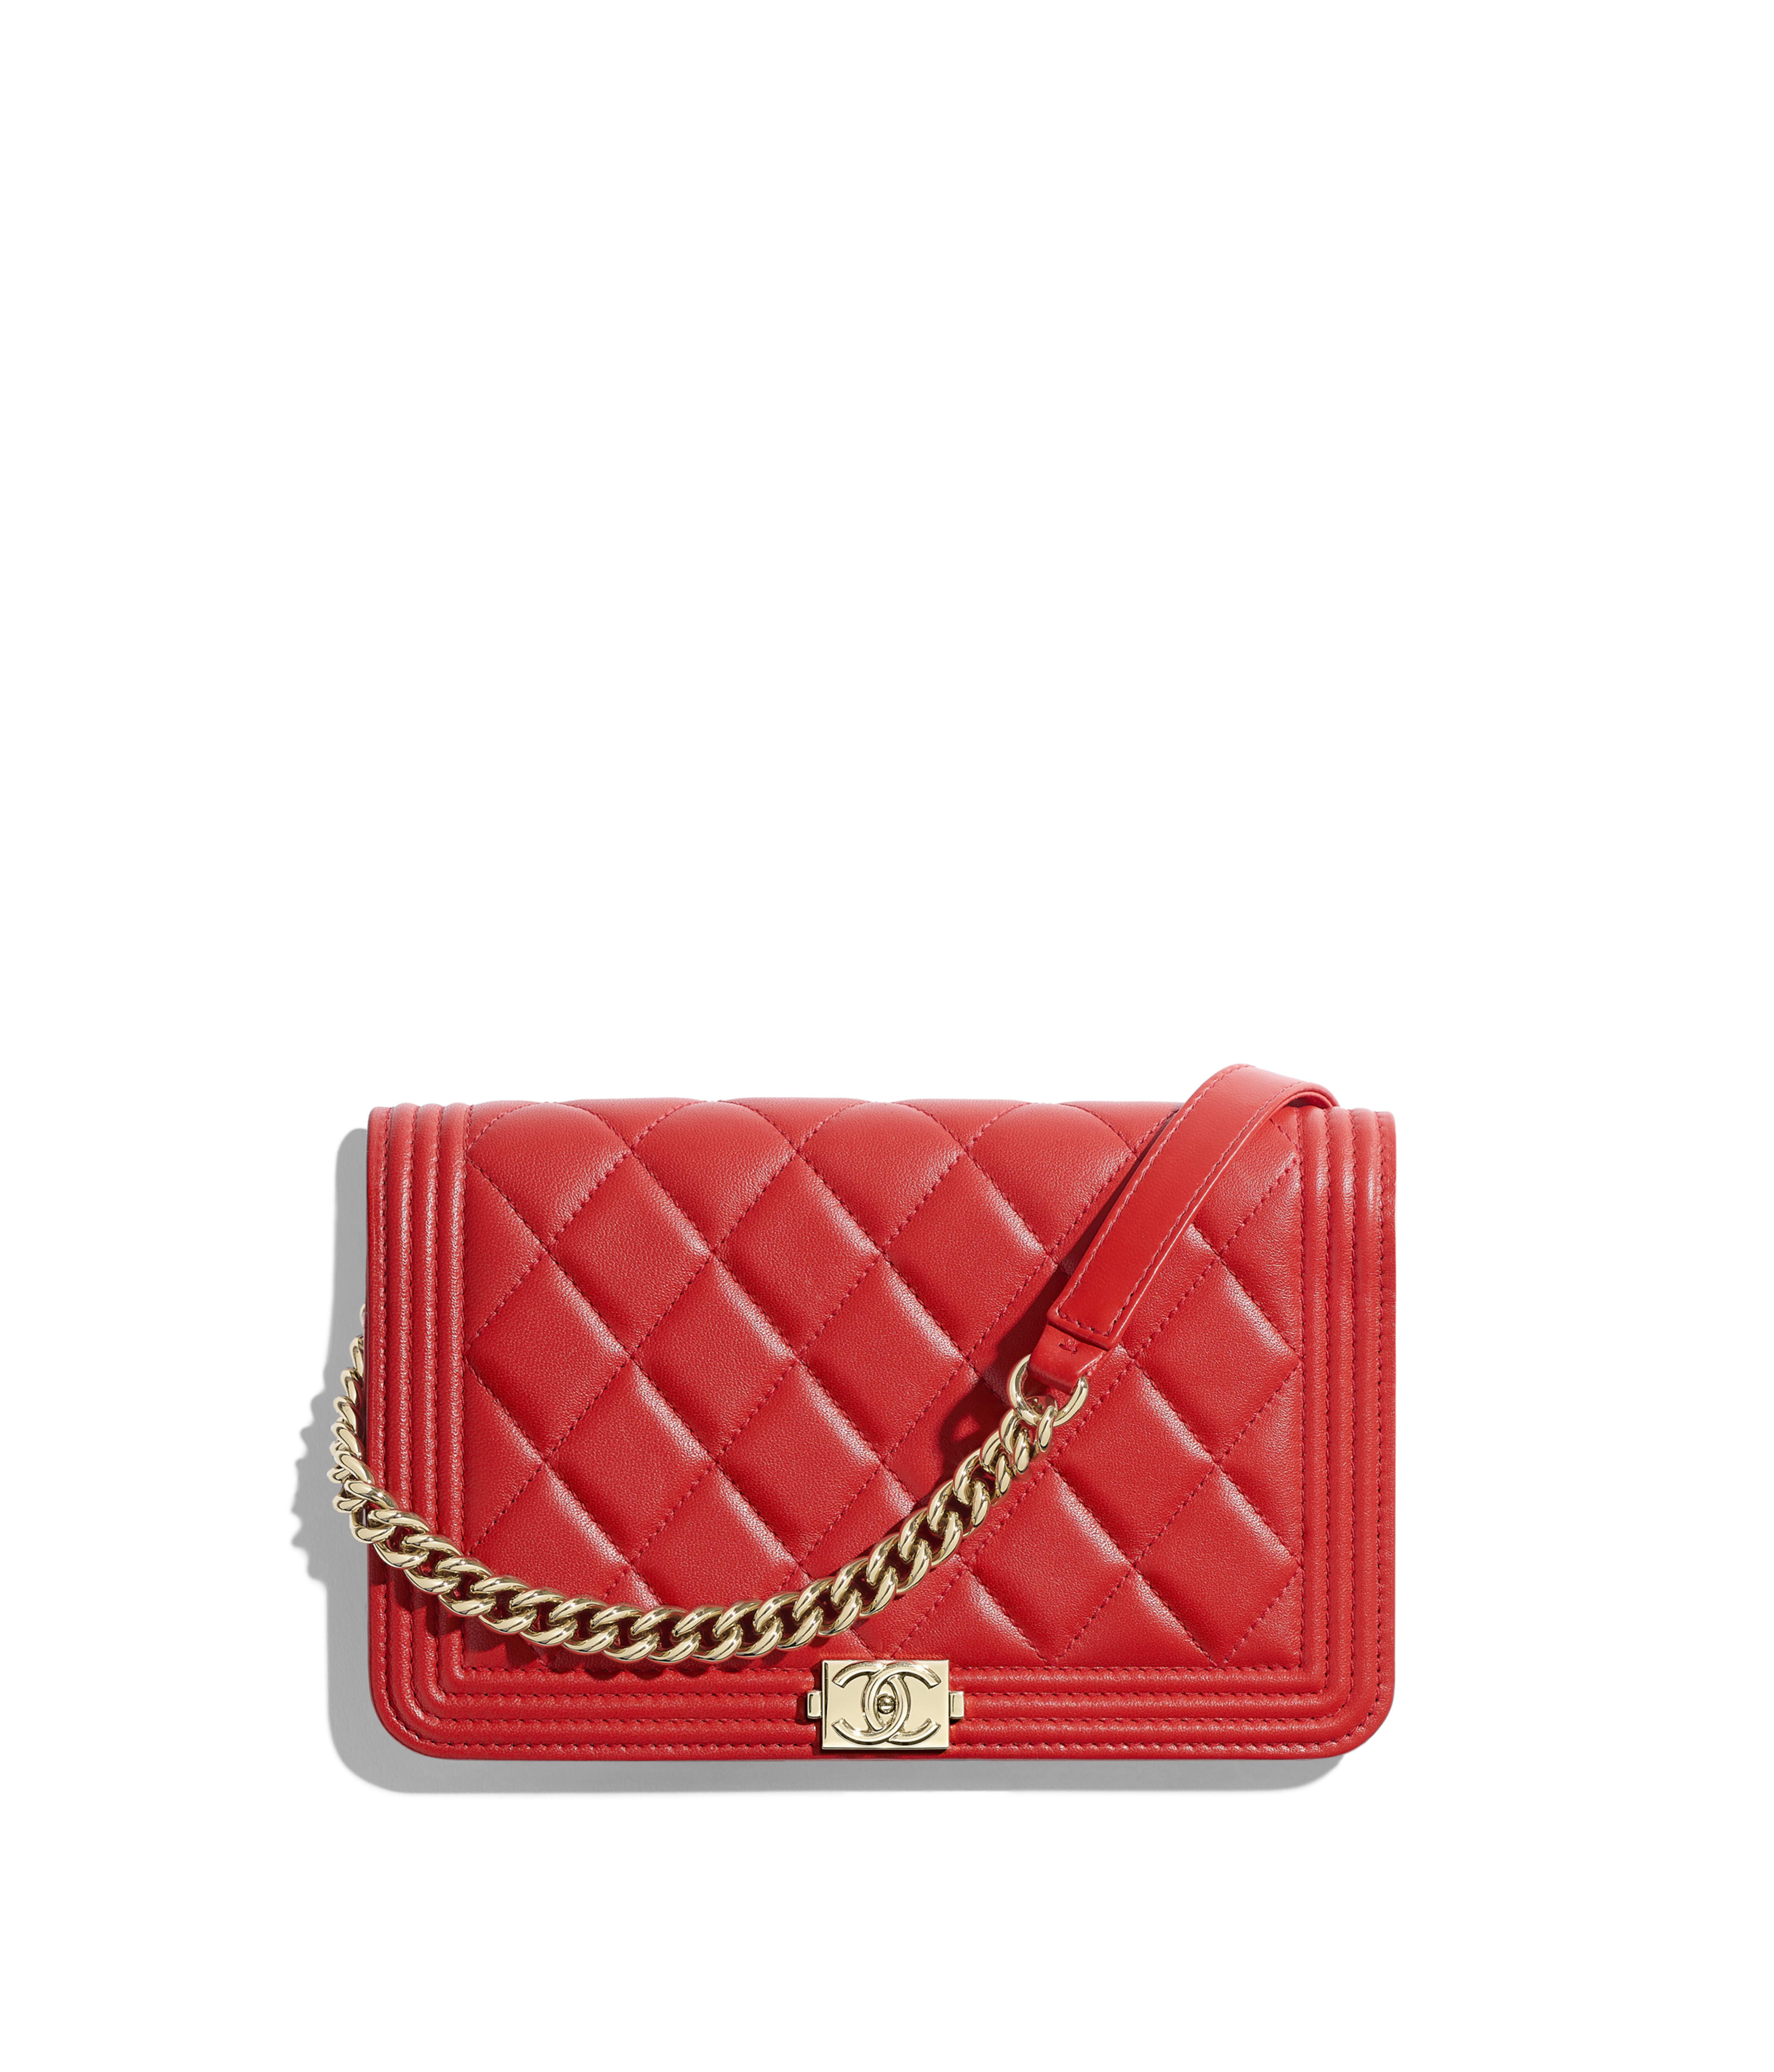 BOY CHANEL Wallet on Chain Lambskin   Gold-Tone Metal, Red Ref.  A81969Y04059N0413 0dc5bb6b5be